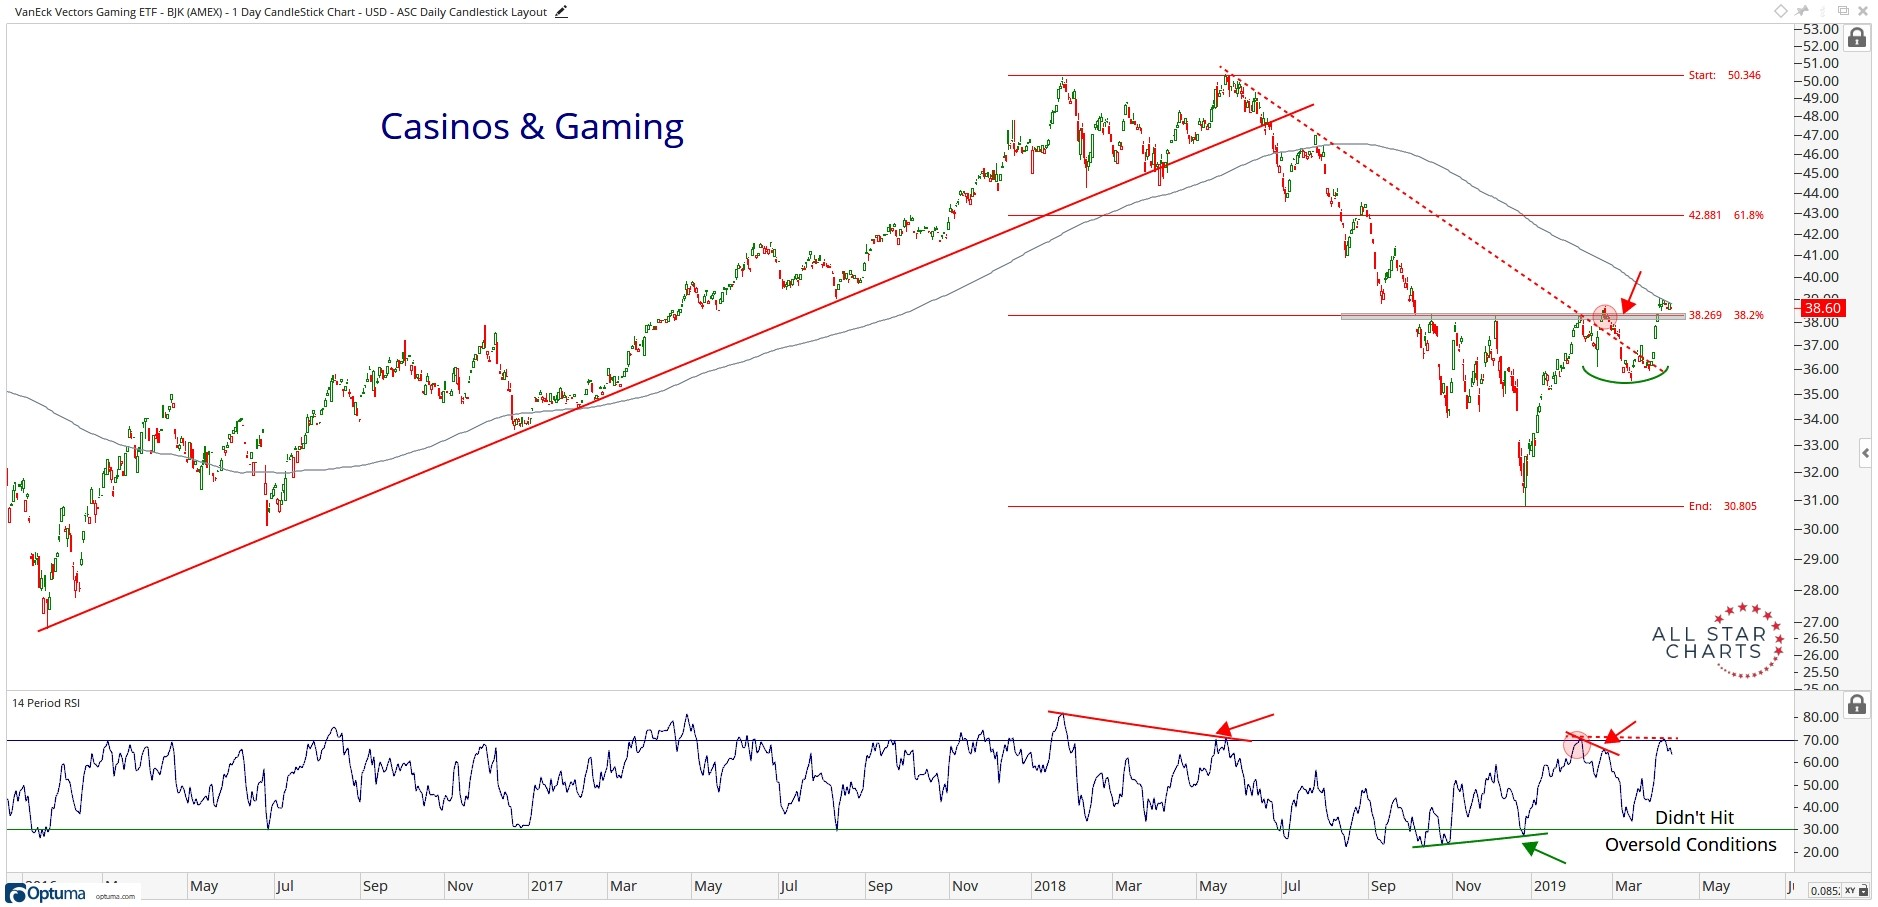 Three-year history of casino and gaming stocks, showing a rebound off a sharp downtrend